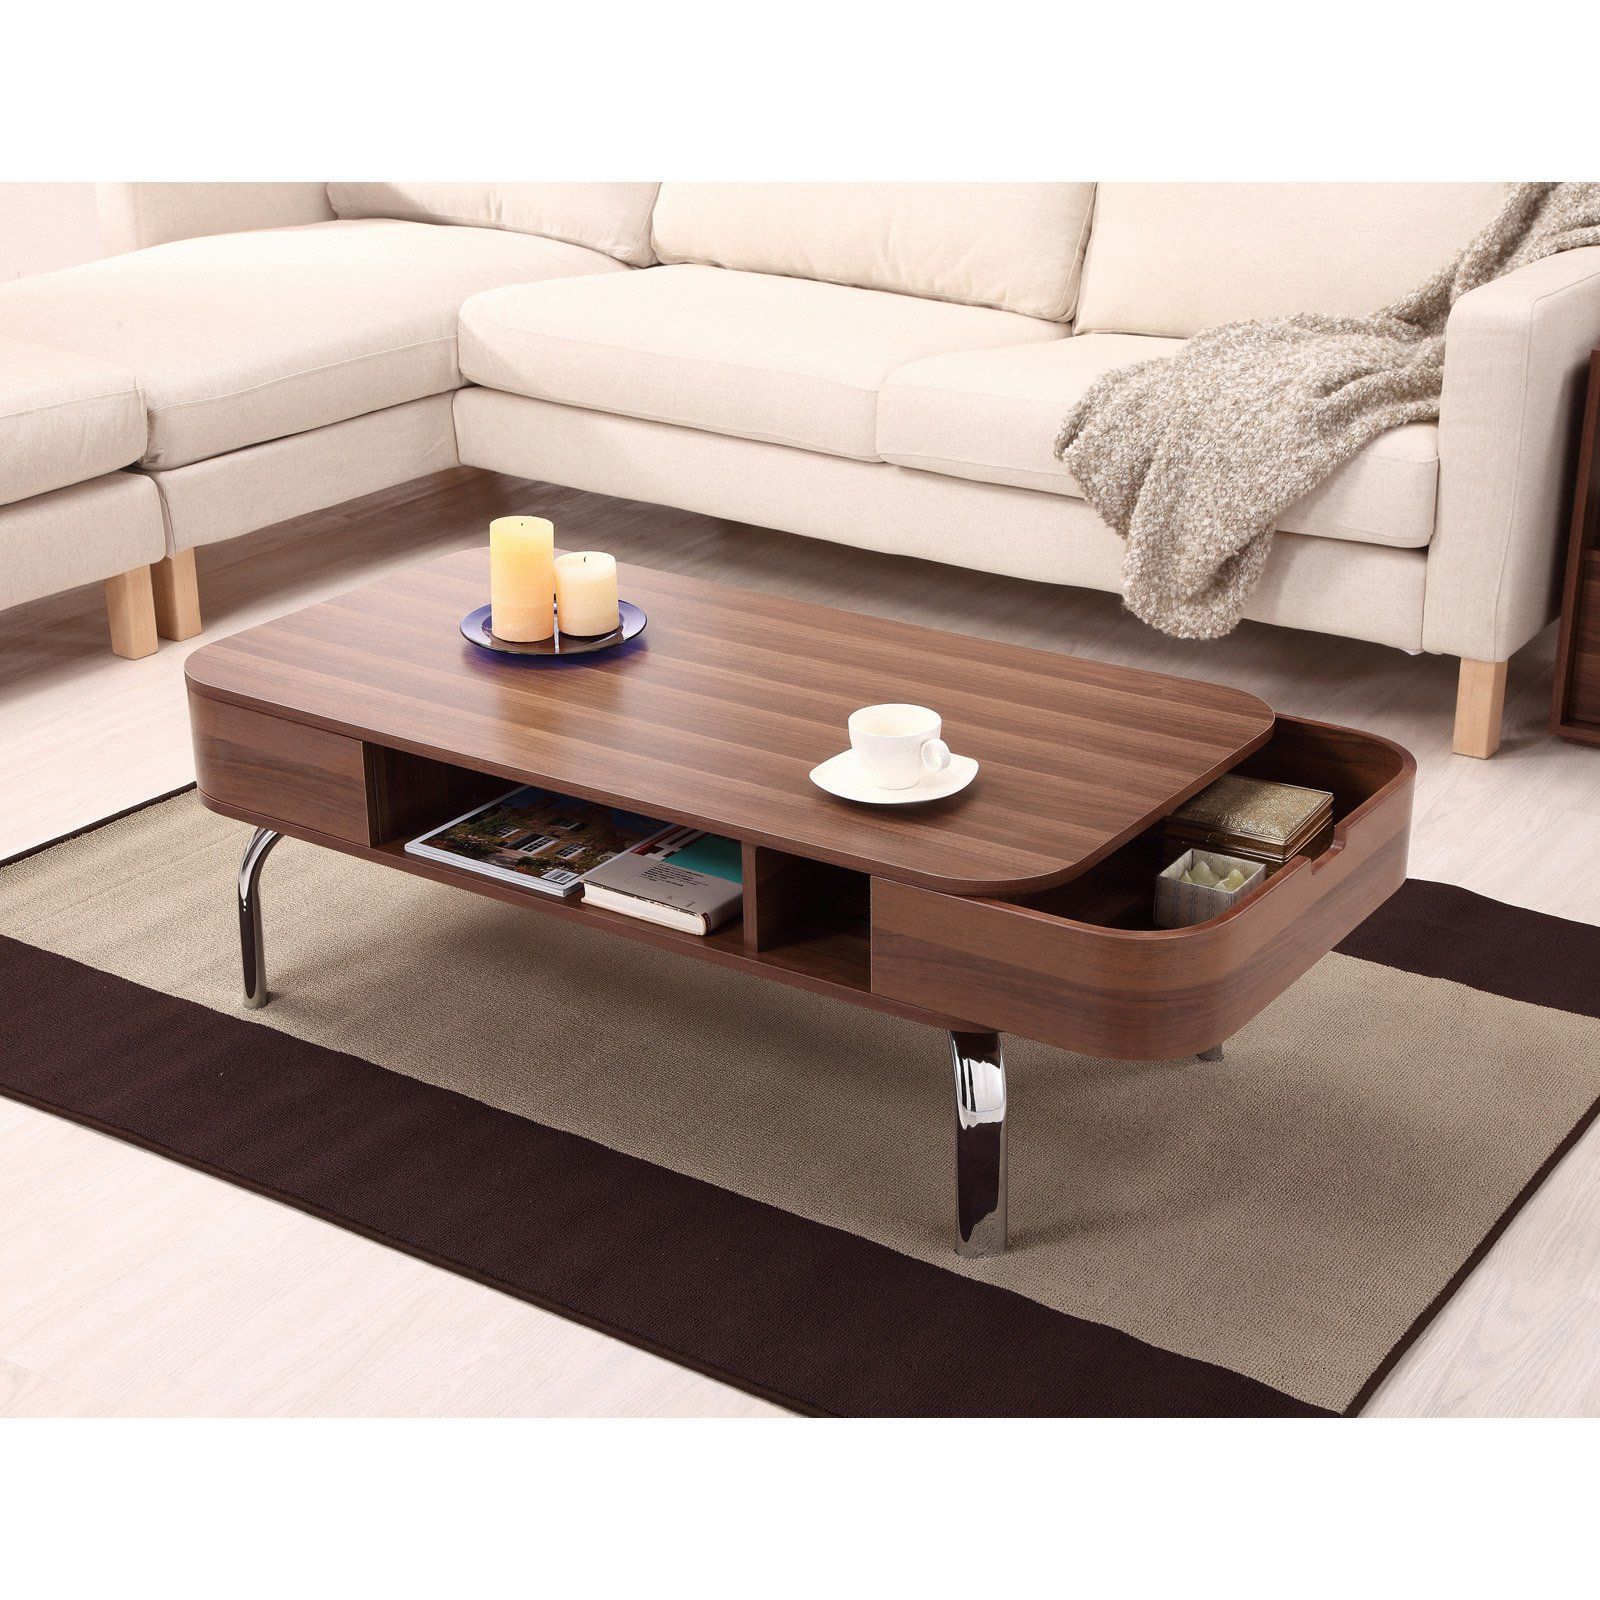 Coffee Table Rounded Corners Hipenmoedernl throughout size 1600 X 1600